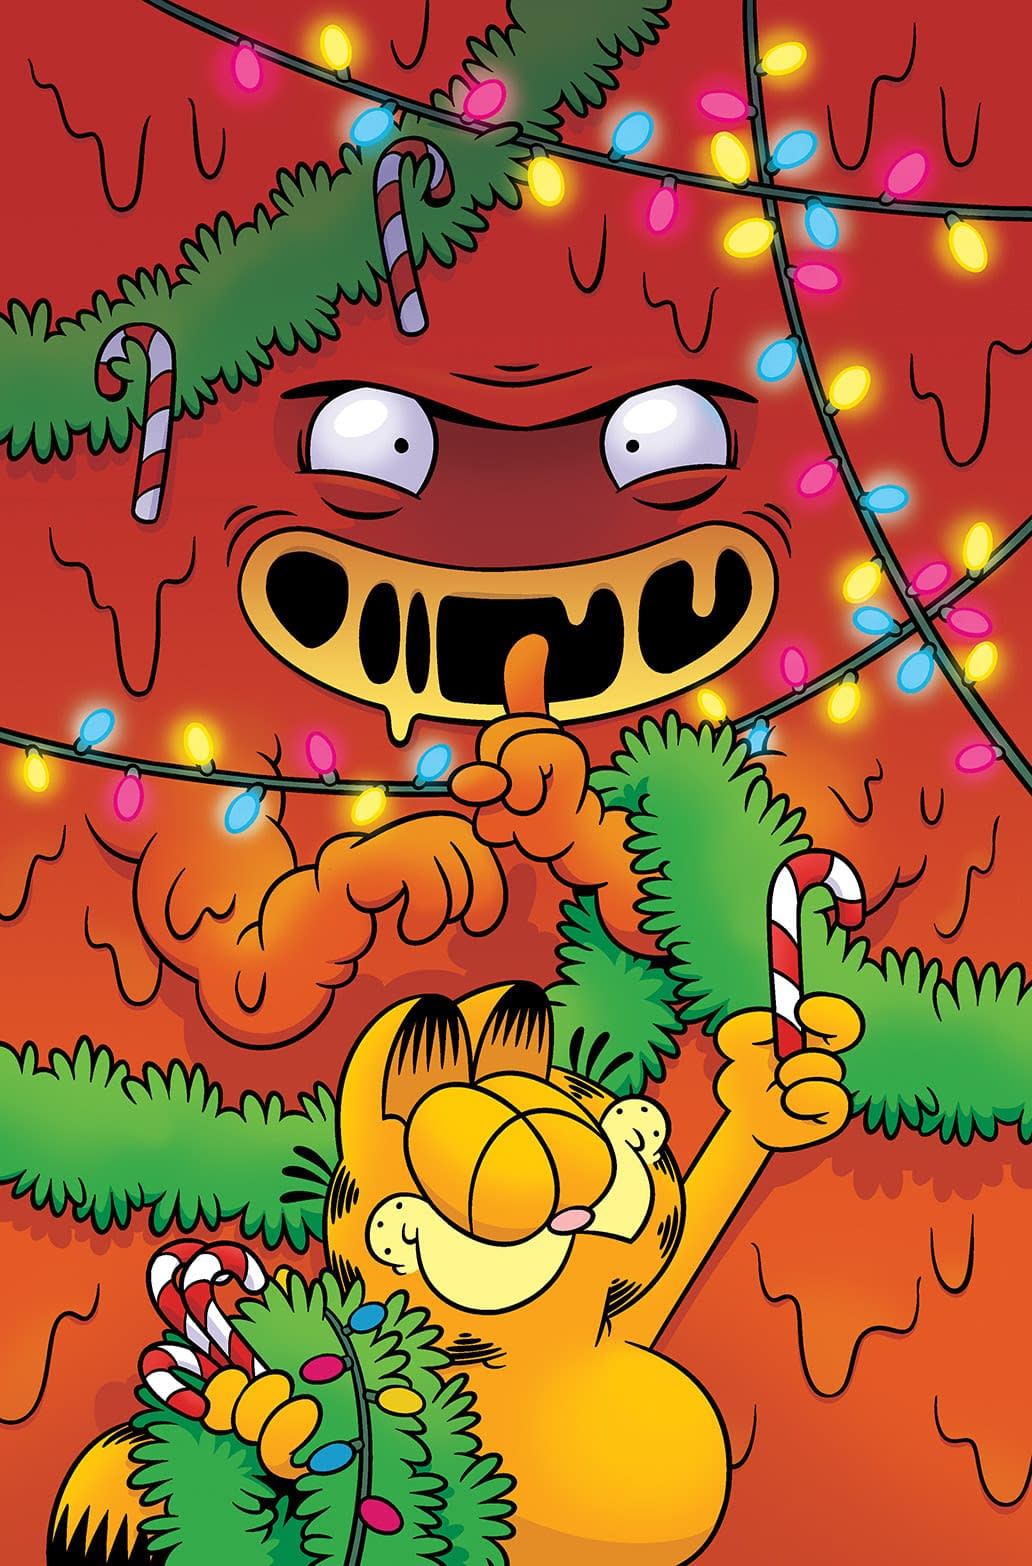 The Lasagna Monster That Stole Christmas A Garfield One Shot To Release This Holiday Season